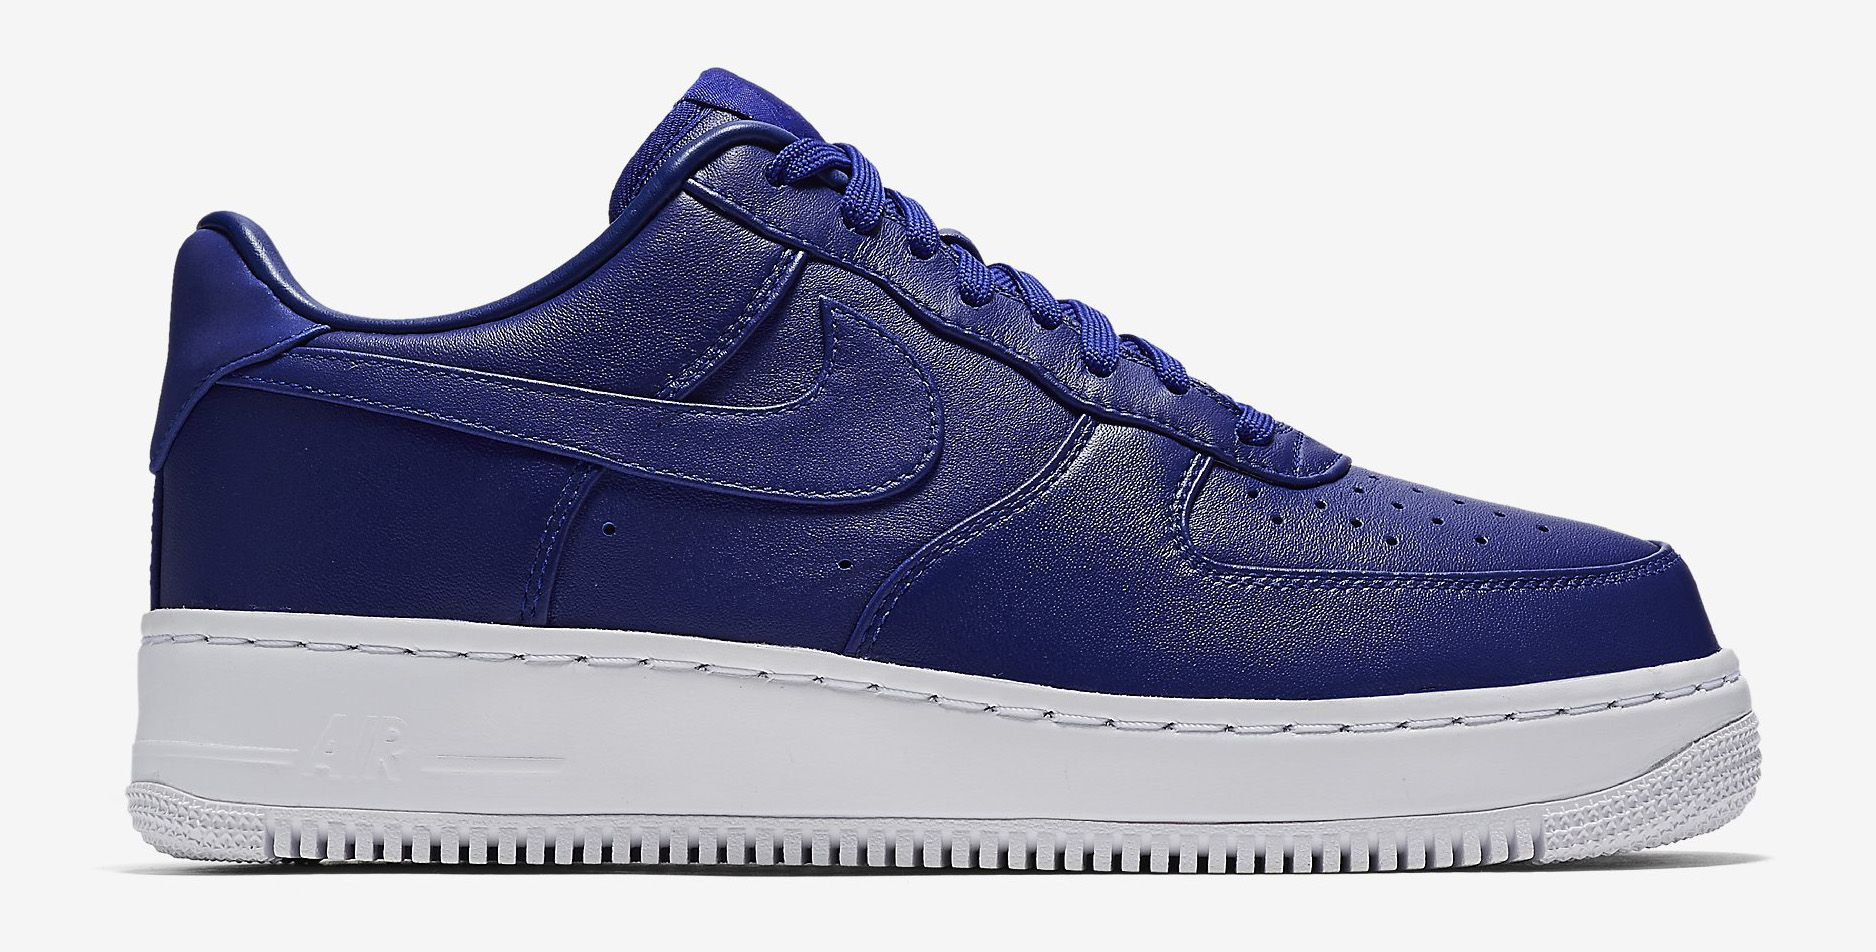 The NikeLab Air Force 1 Low Will Also Come In A Concord